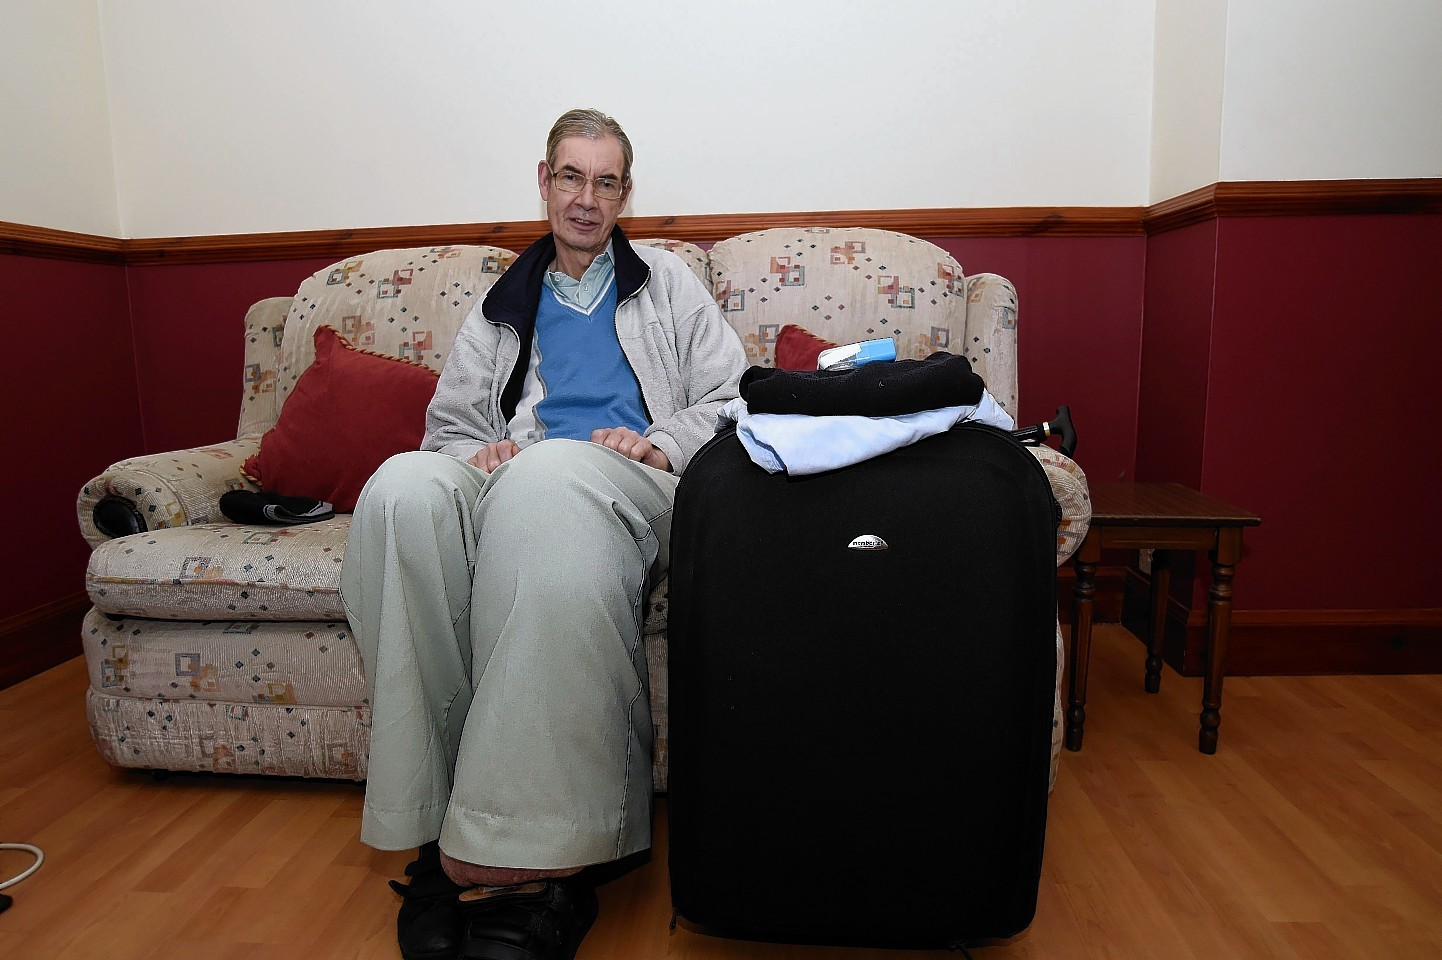 Michael Cull sits by a suitcase he had packed ready for surgery